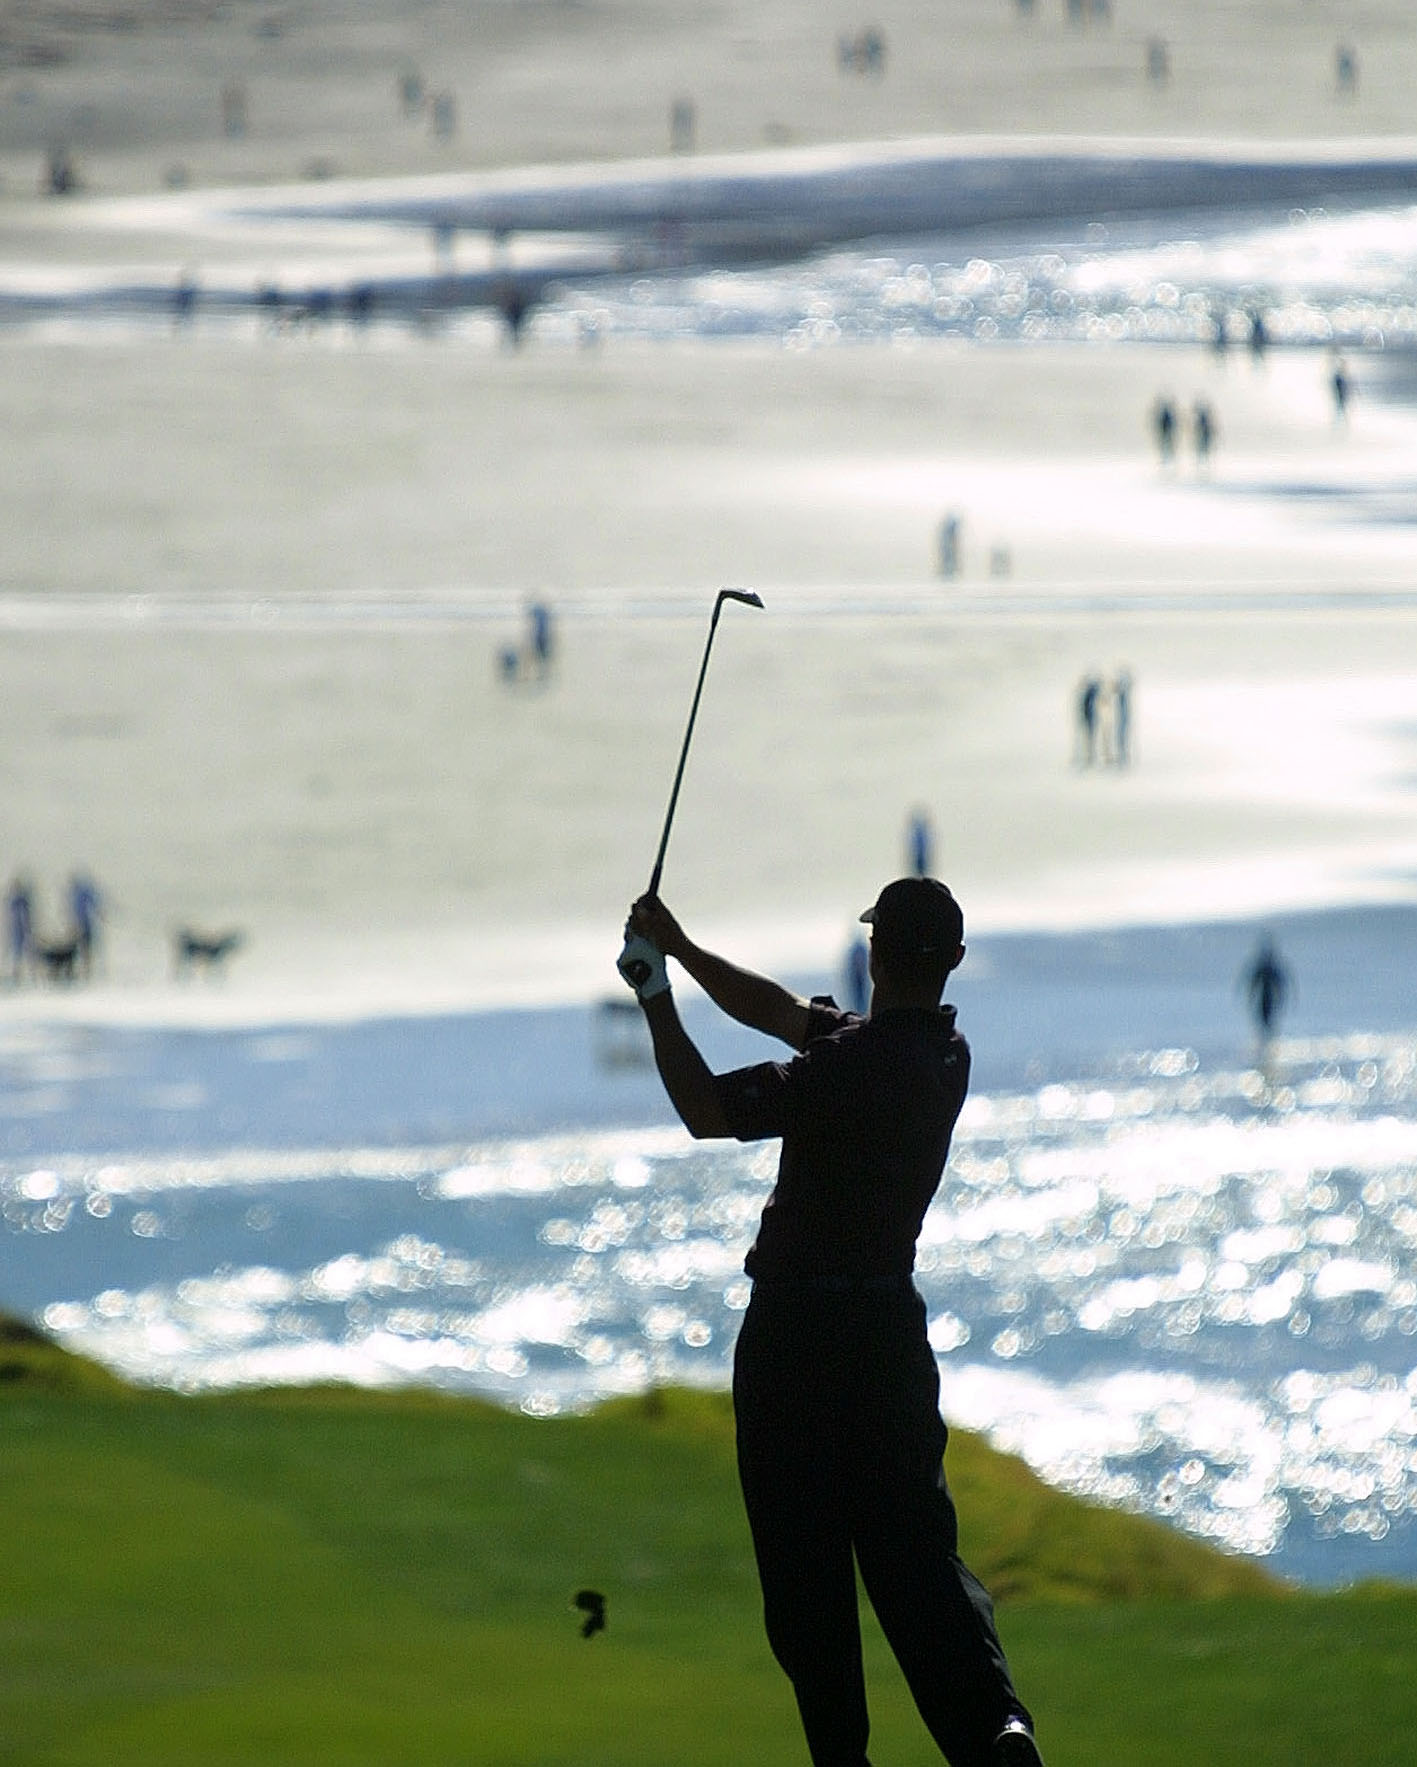 Tiger Woods hits his second shot on the ninth hole at Pebble Beach during the final round of the 2001 AT&T Pebble Beach National Pro-Am.